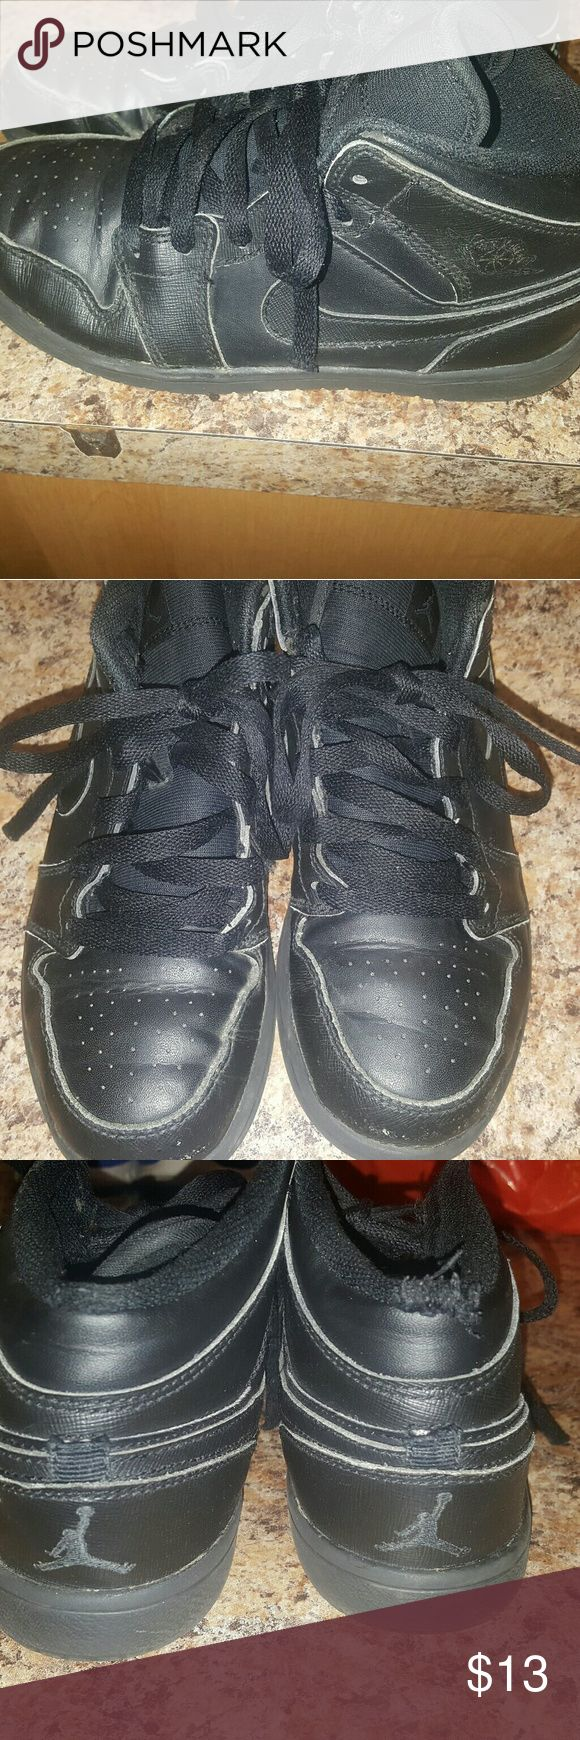 Jordan 1 Shoes Jordan 1 black shoes size 2.5Y Lil scratch at very tip front when he walked rub the floor some. No string end on the shoe strings at the end of strings. Look on picture 1 and 2 no ends on shoe strings . Jordan Shoes Sneakers